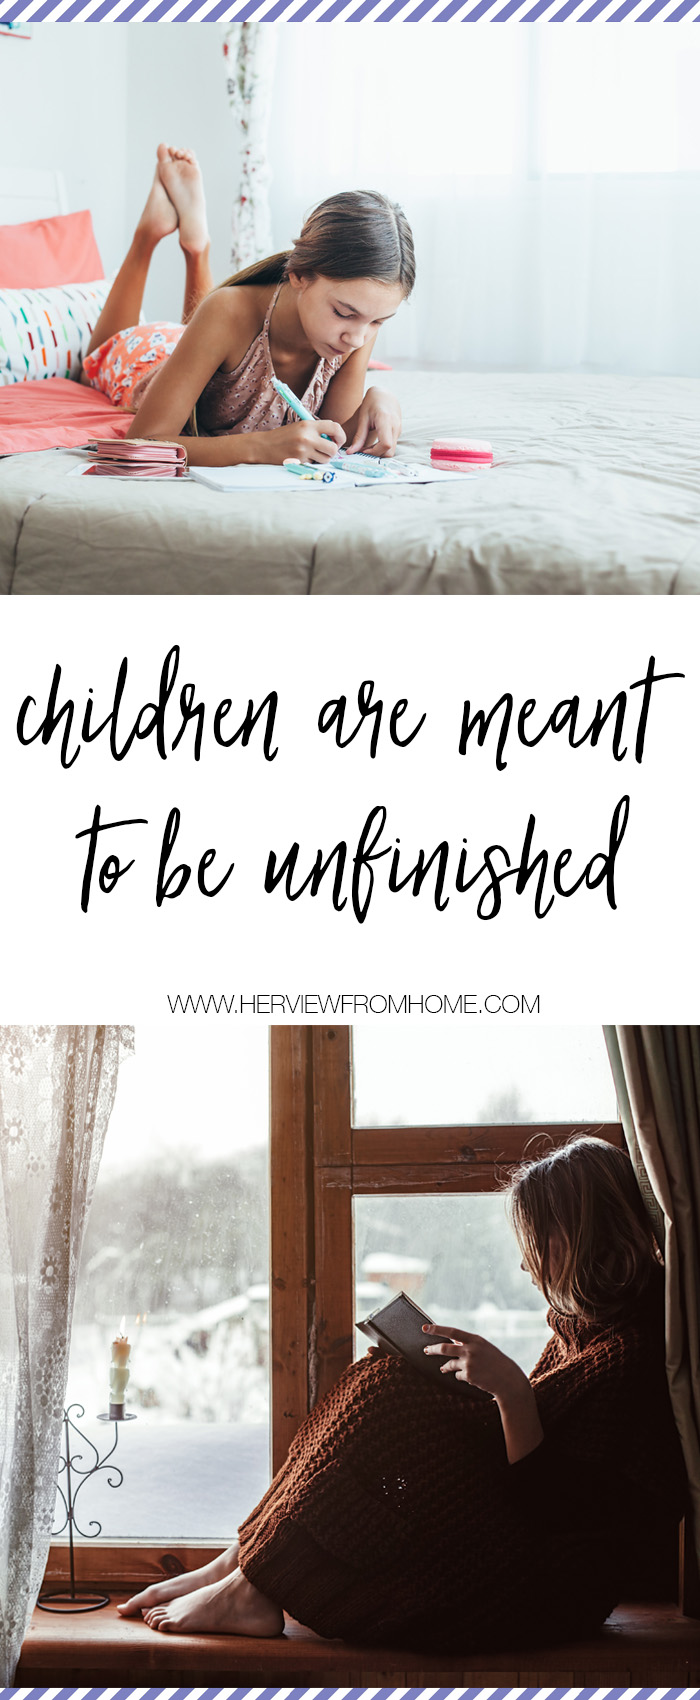 But what I often forget is children are meant to be unfinished. Children are meant to continue improving and learning and finding their way.